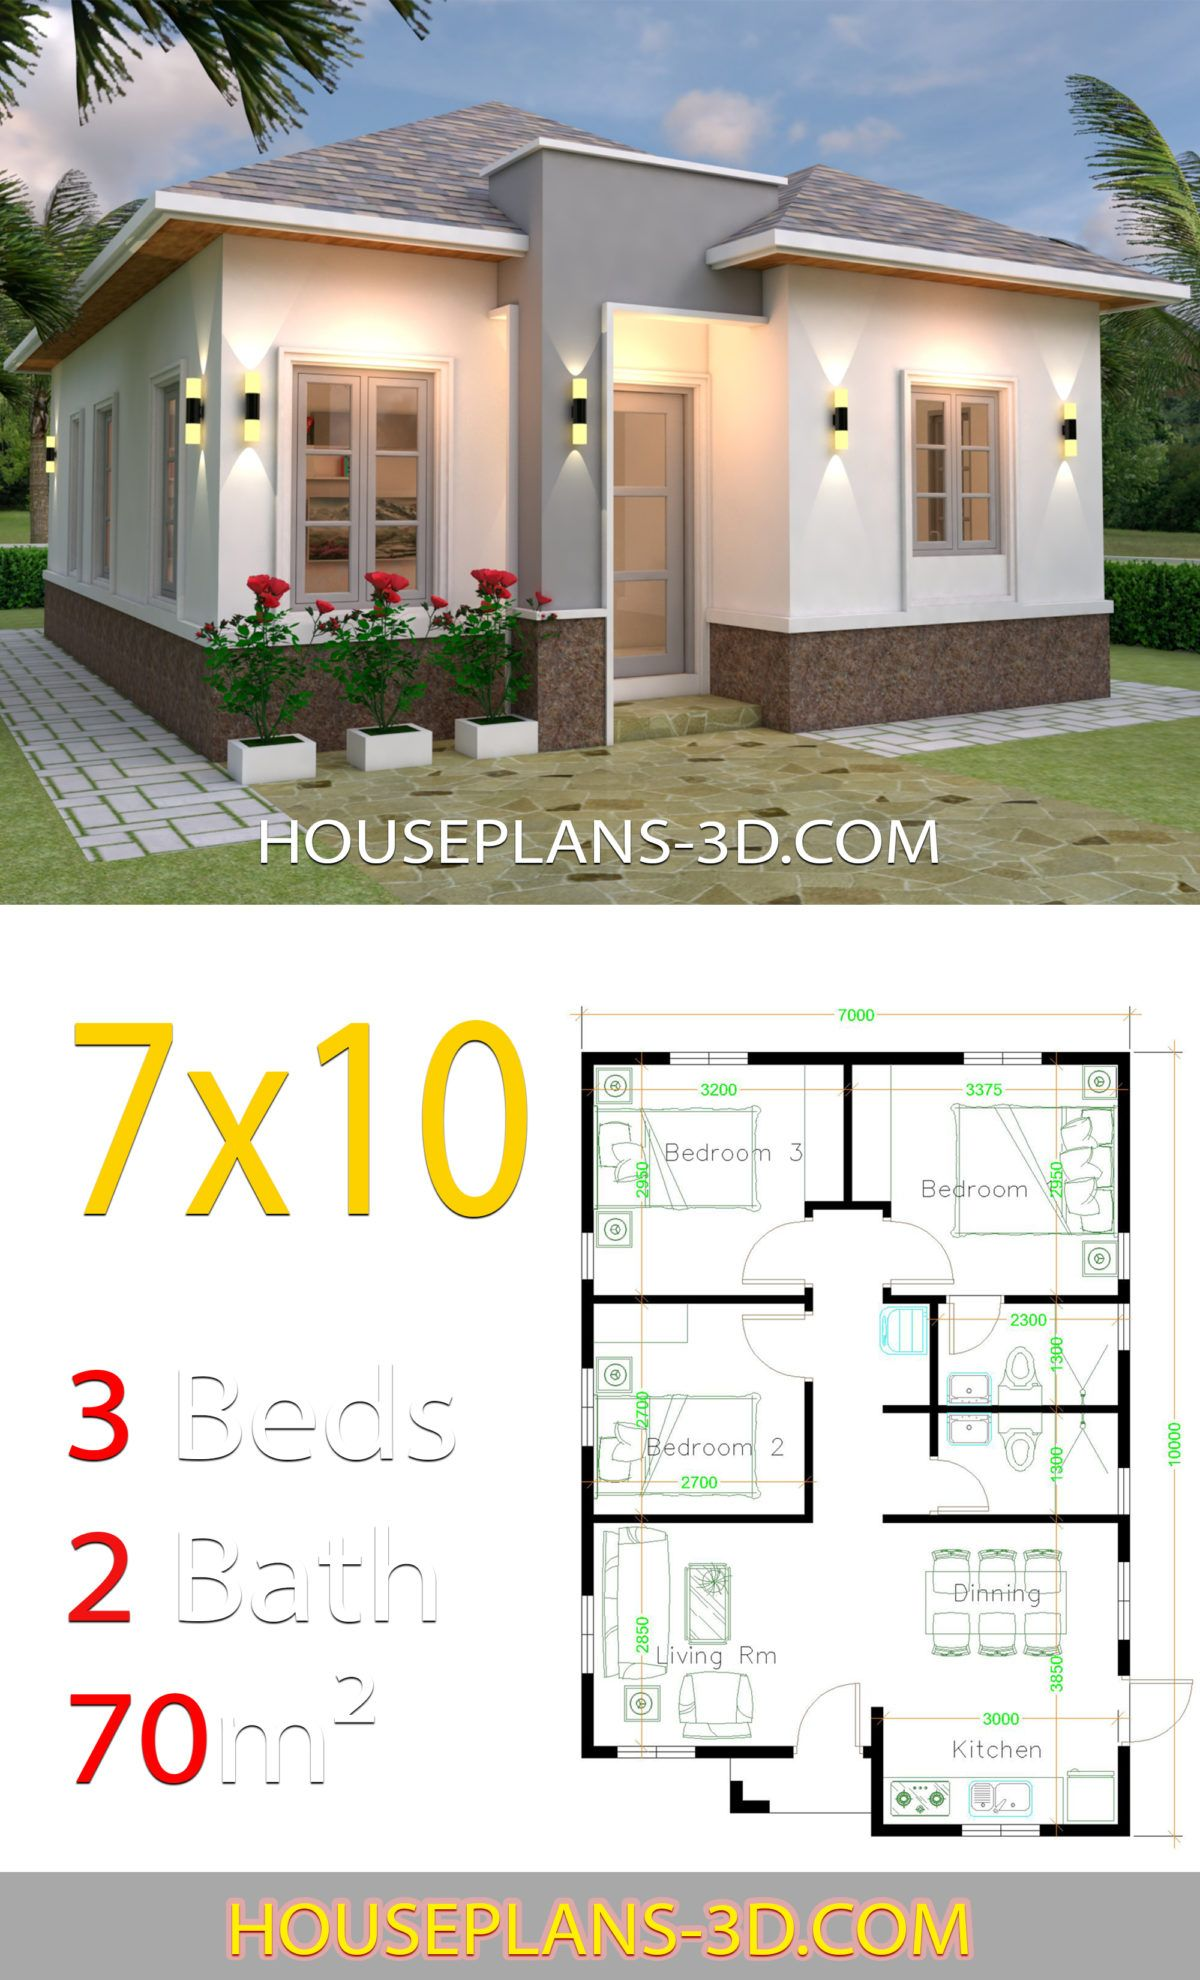 House Plans 7x10 With 3 Bedrooms House Plans 3d In 2020 Affordable House Plans Diy House Plans House Plans